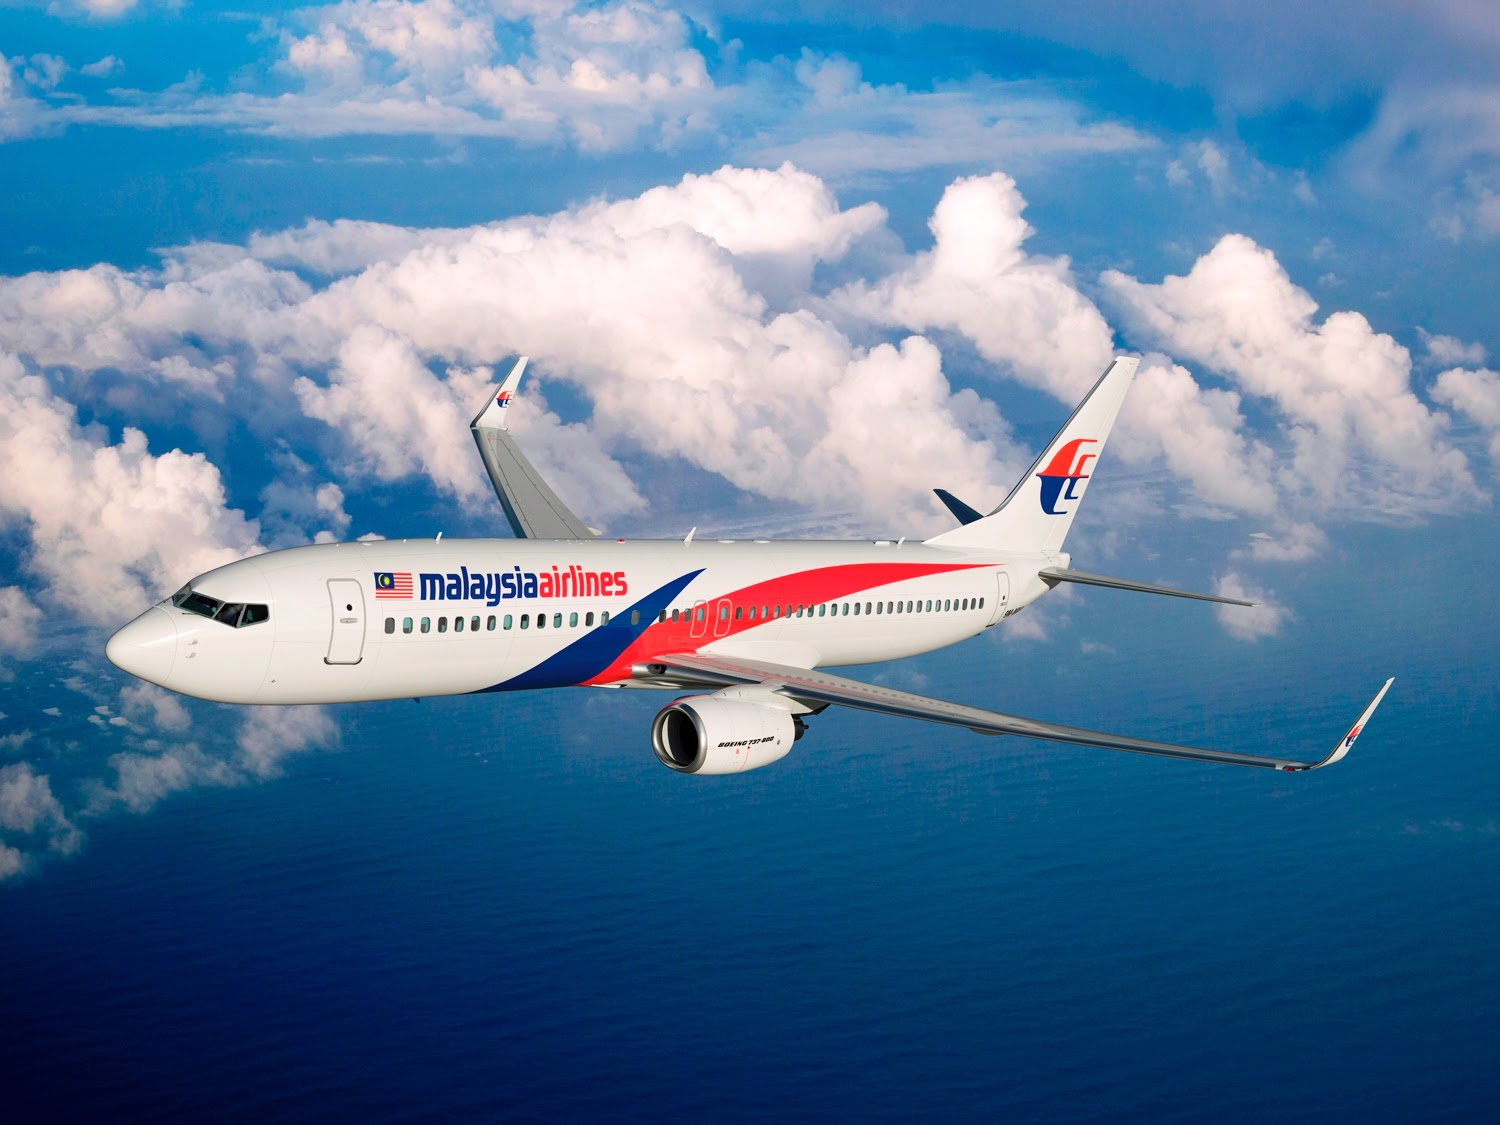 Update: Malaysia Airlines MH370 Flight Incident